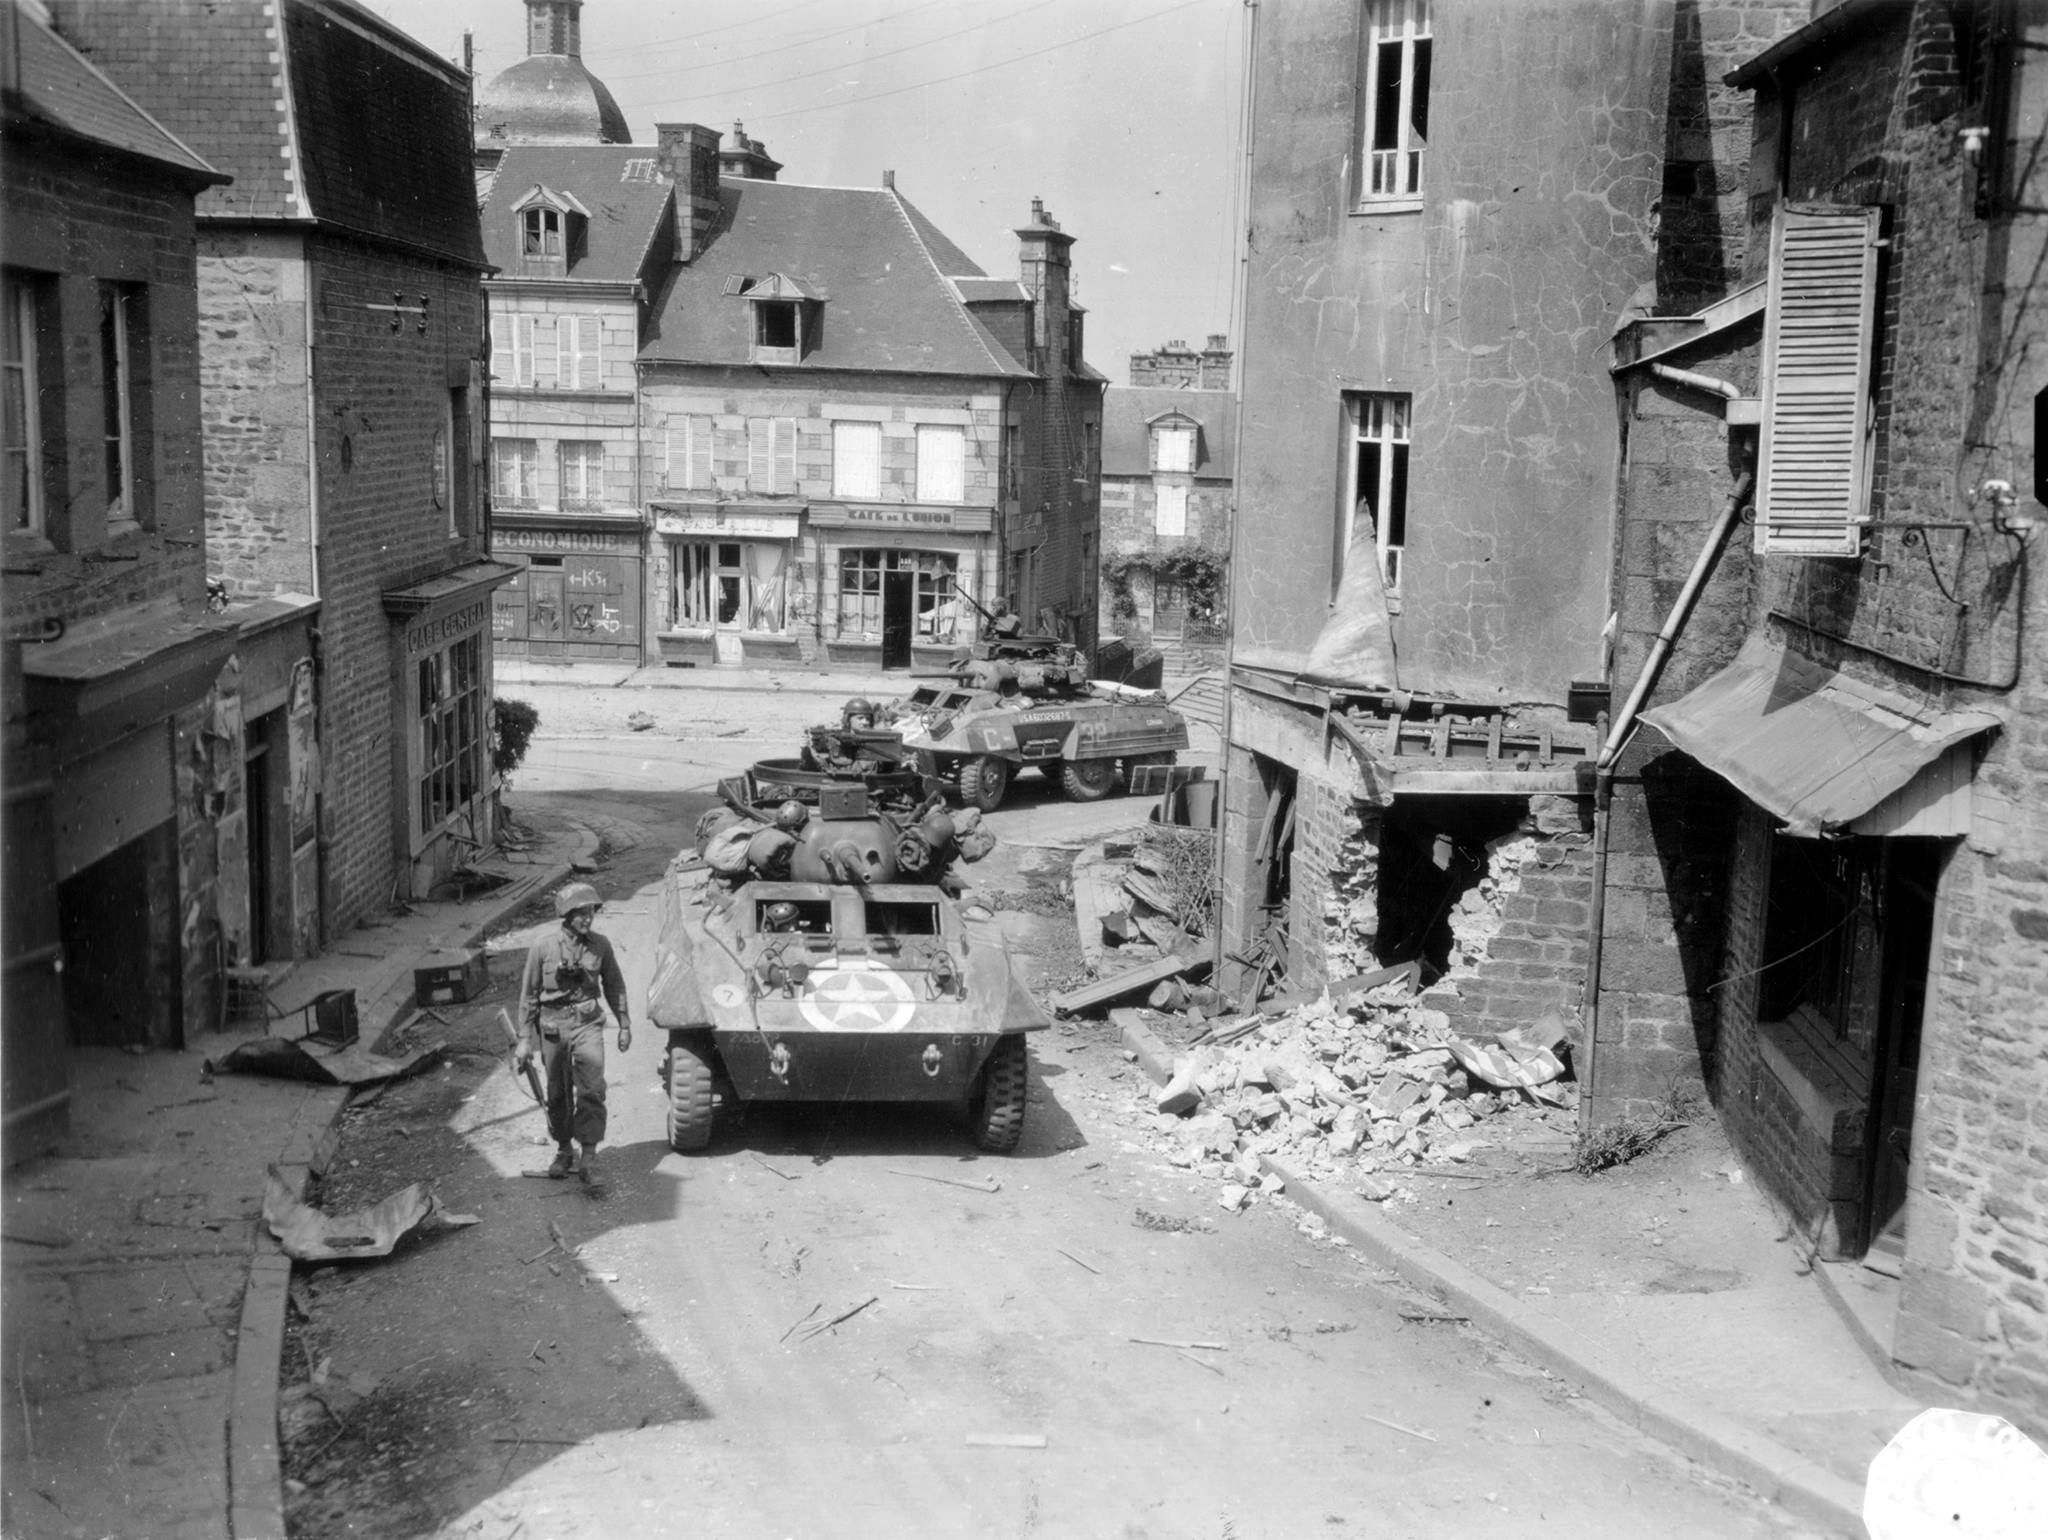 A pair of M8 Armoured Cars of 'C' Company, 82nd Recon Battalion, 2nd Armored Division, pass through Saint Sever Calvados, on 3rd August 1944.